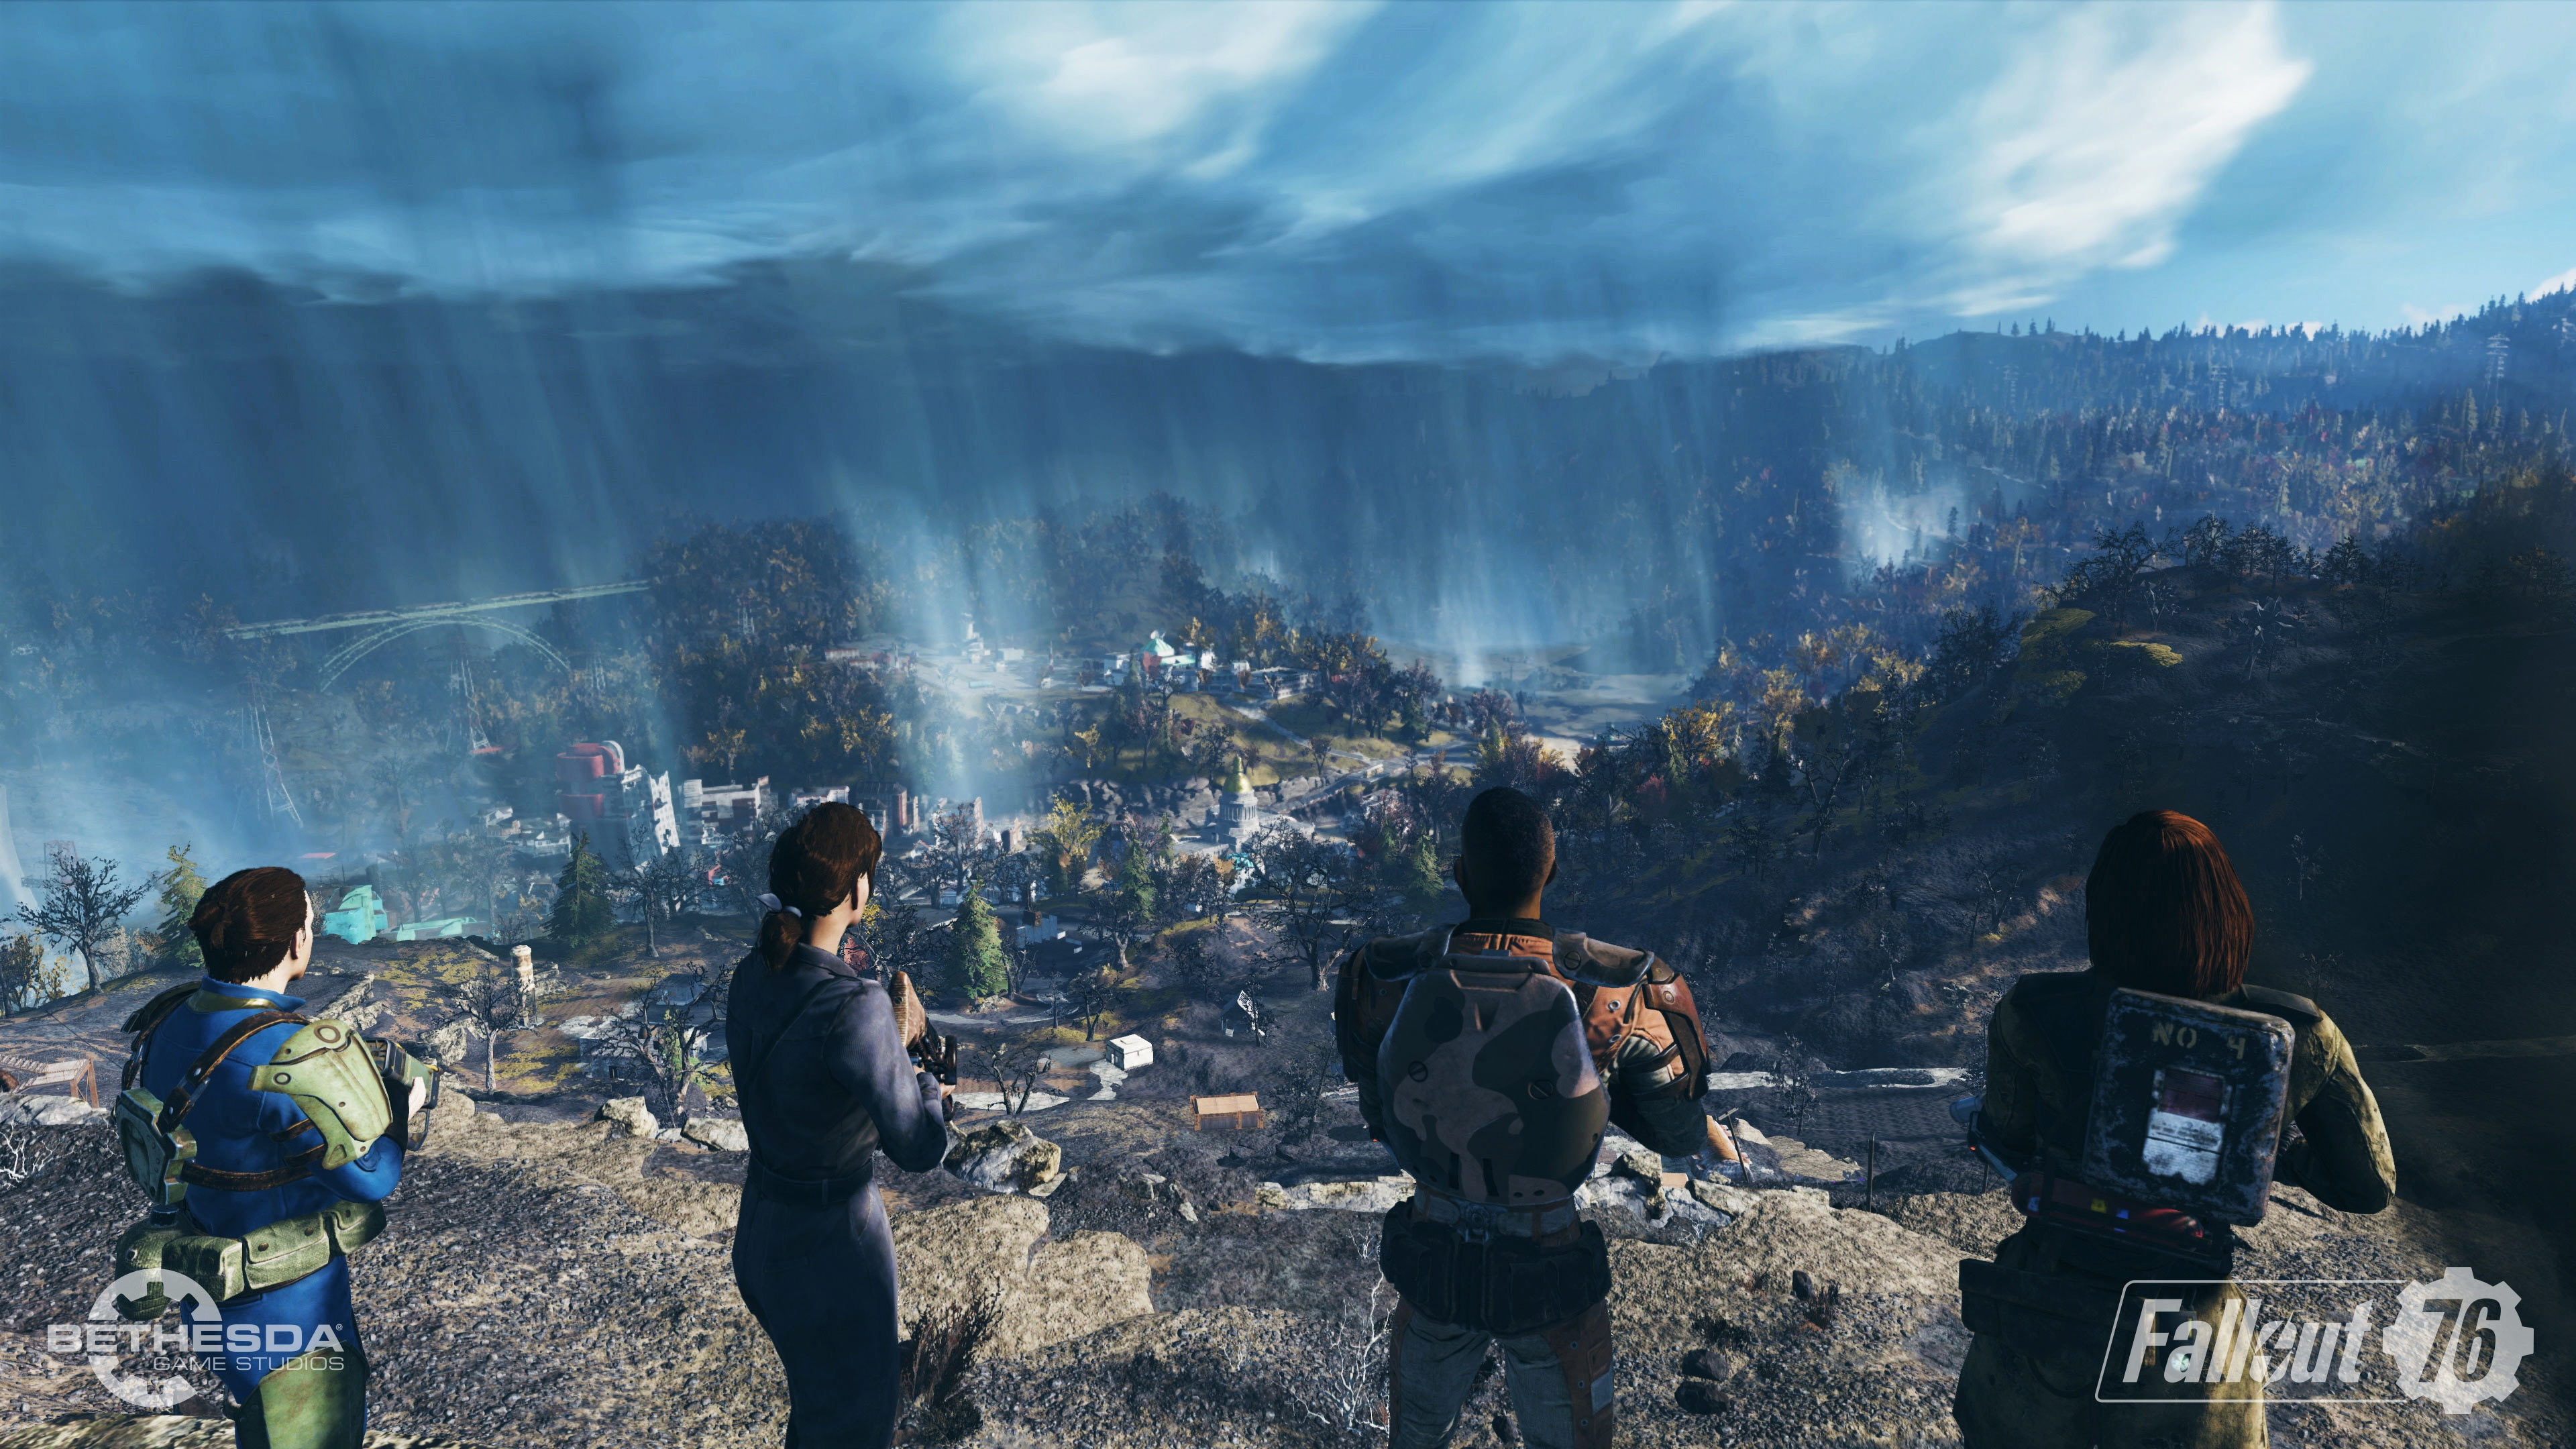 Bethesda has a new Fallout game on the way for PC PS4 and Xbox One heres the release date and all the key details we know about Fallout 76 so far